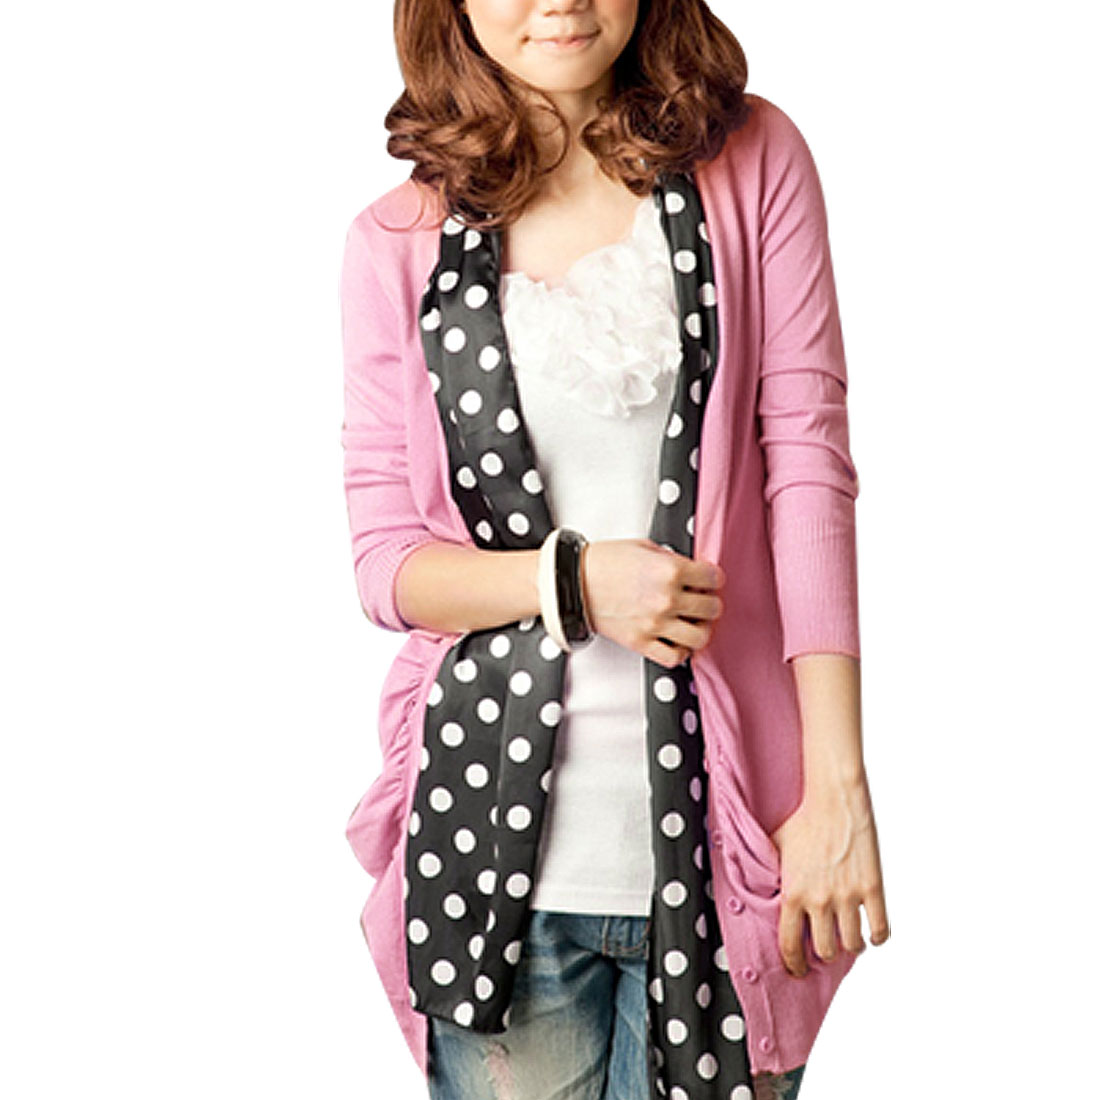 Lady Pink Knitting V Neck Button Up Long Sleeves Cardigan XS